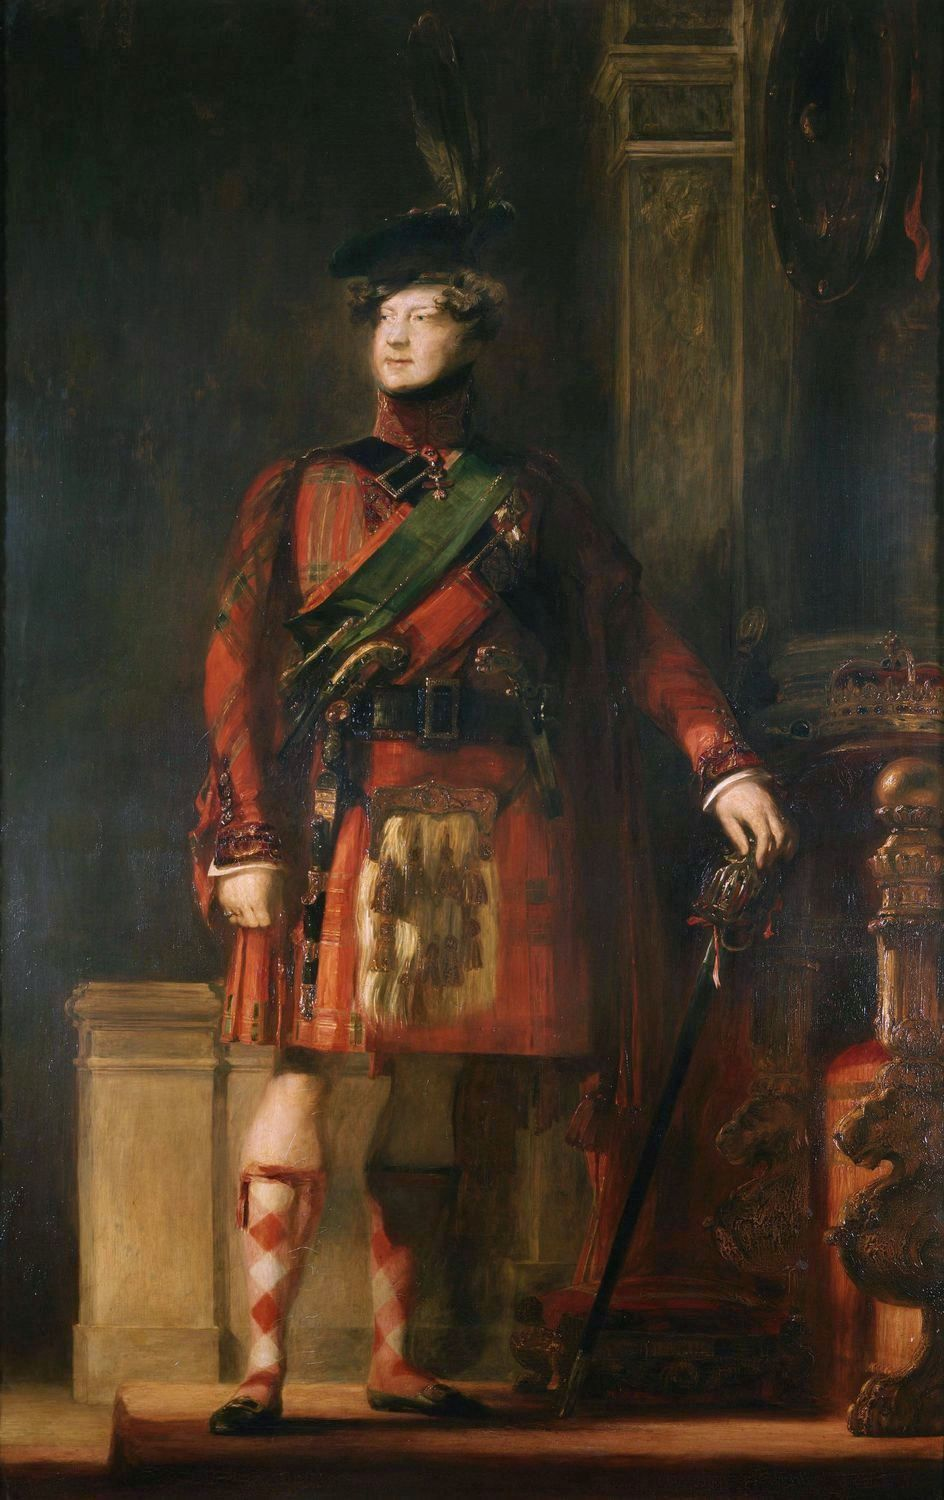 King George IV in Full Highland Dress of his visit to Scotland